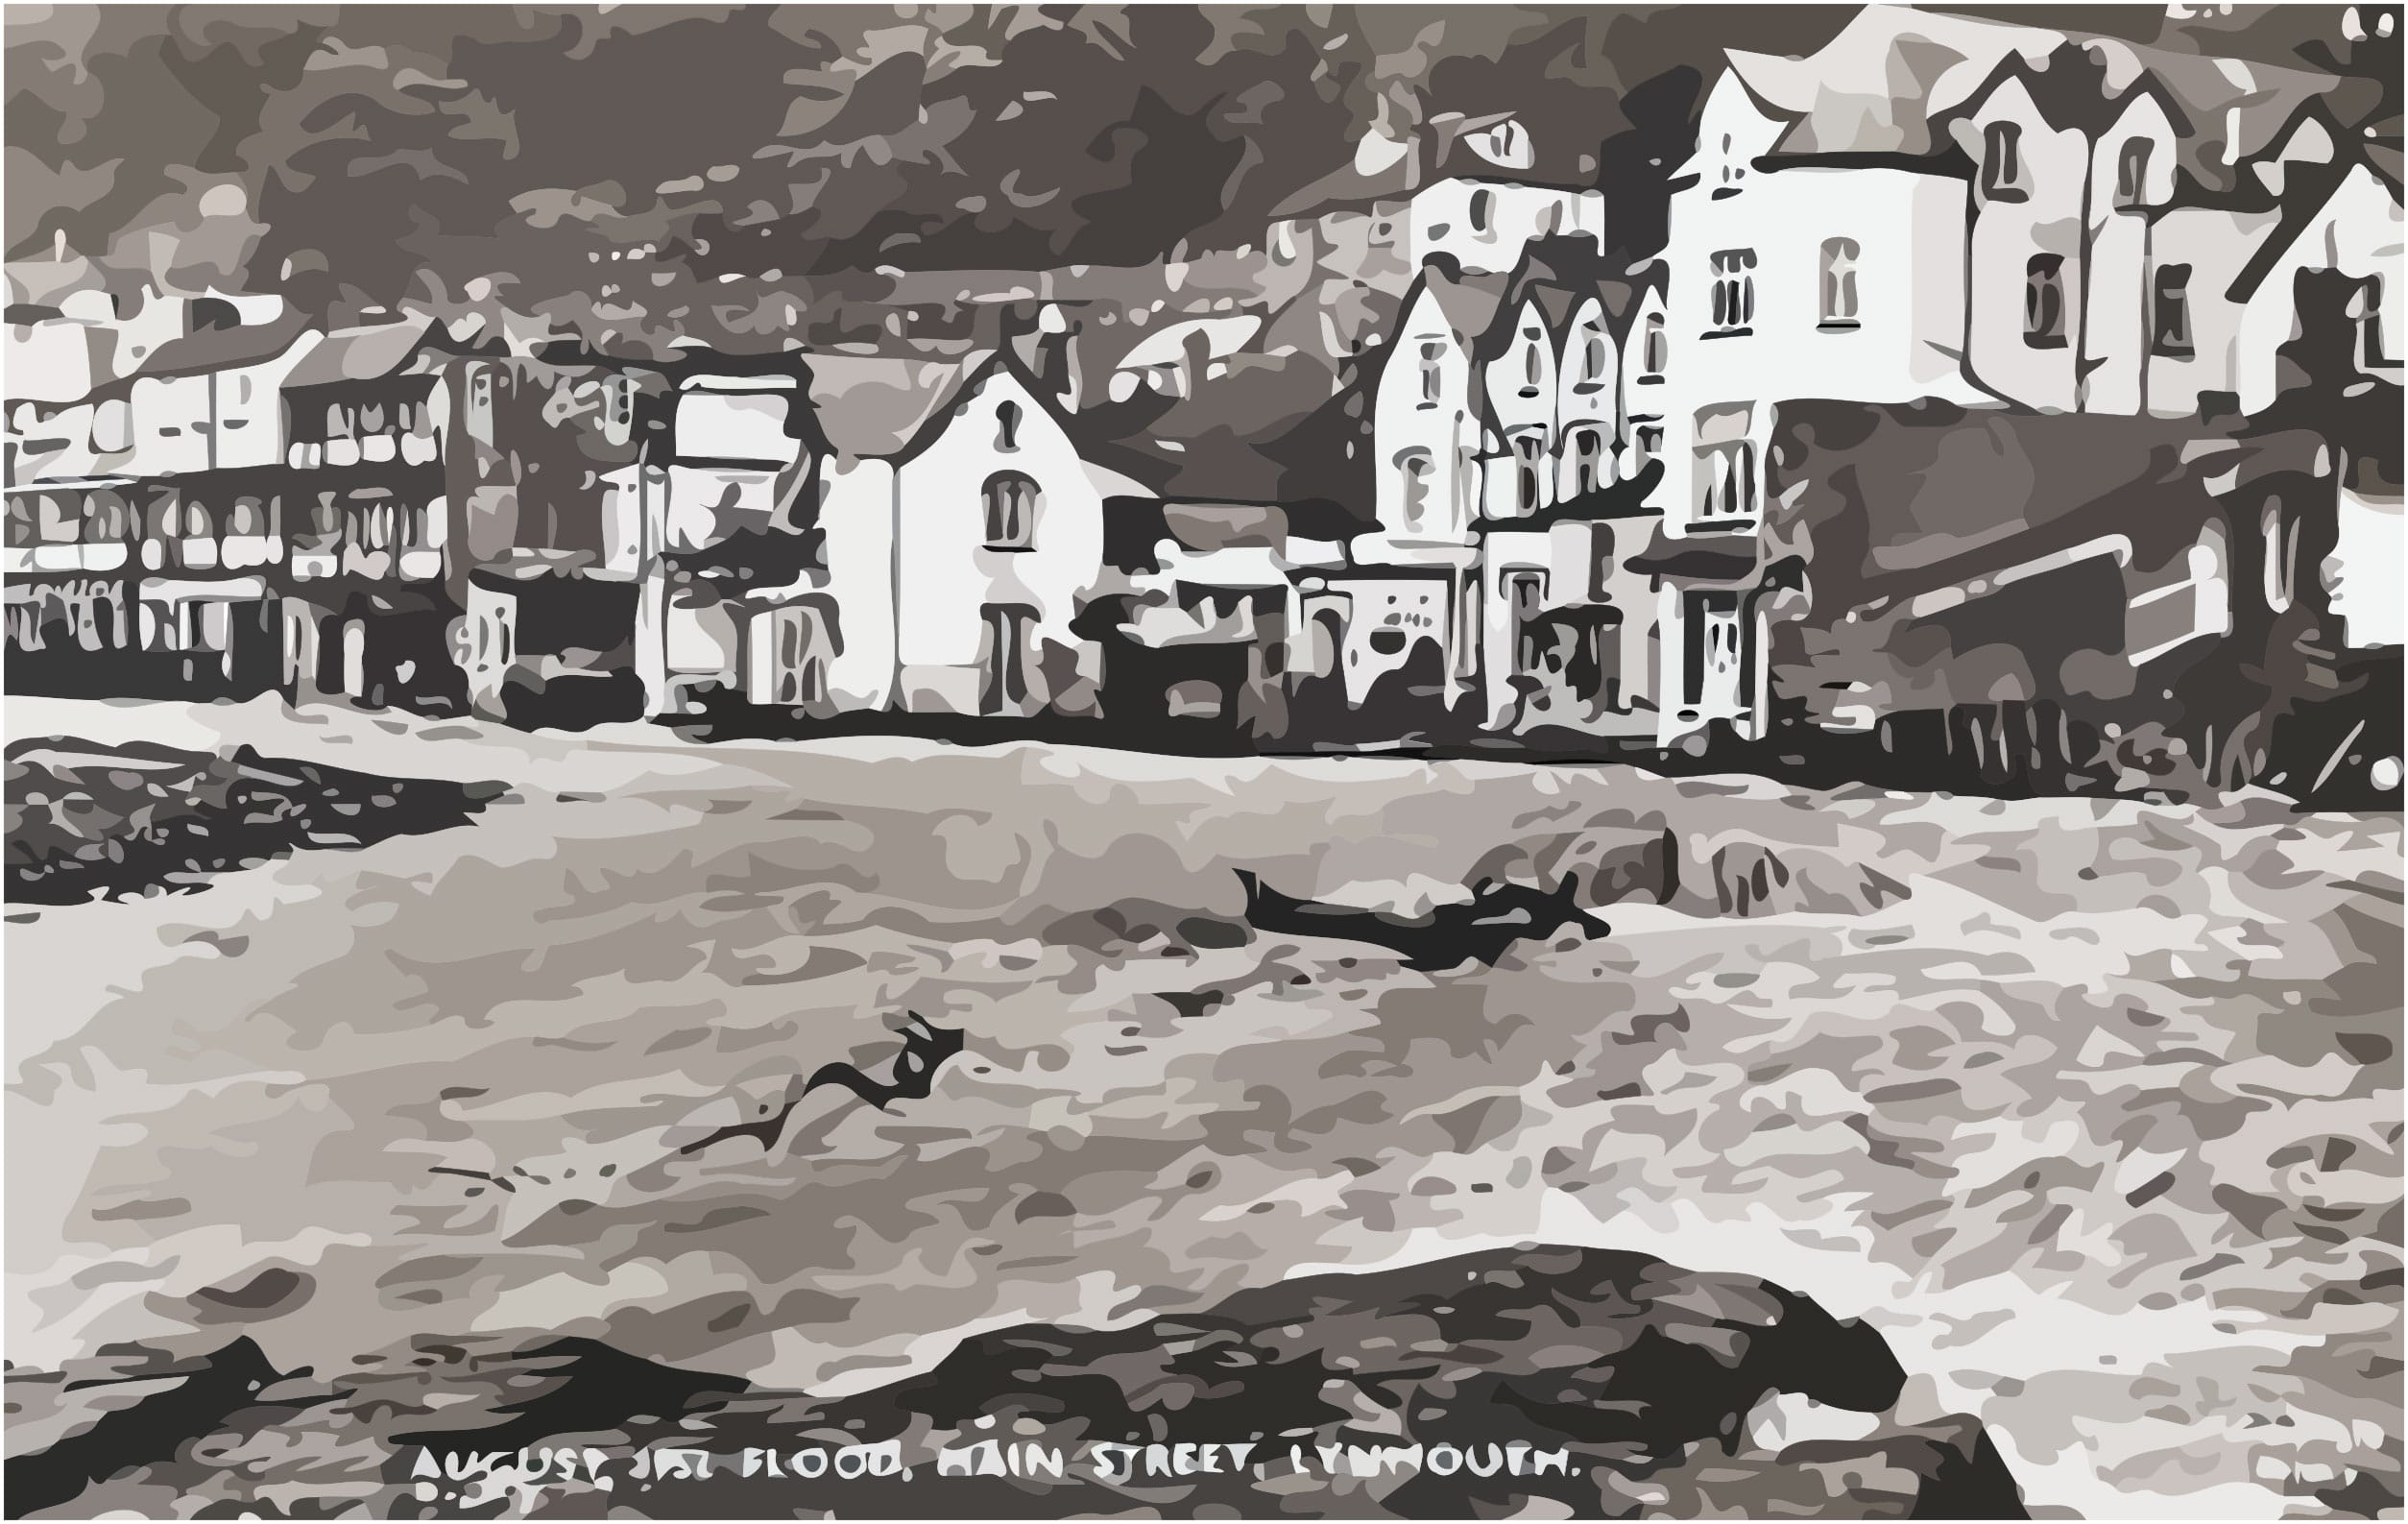 Main Street Lynmouth after the flood